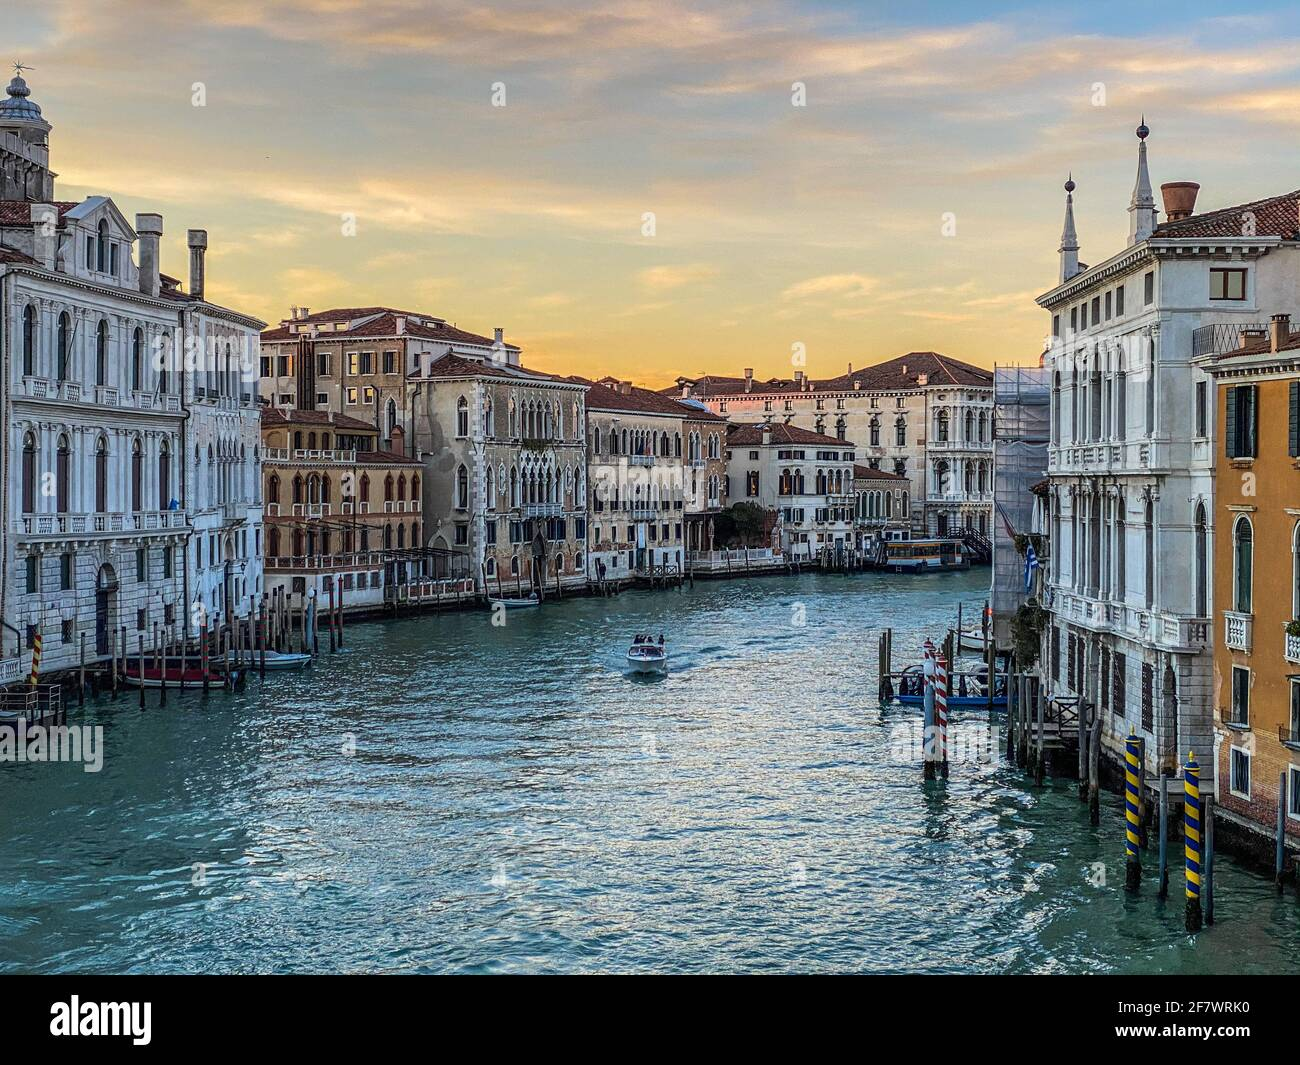 View of the Grand Canal from the Ponte dell'Accademia in Venice, Italy. Only one boat on the water Stock Photo